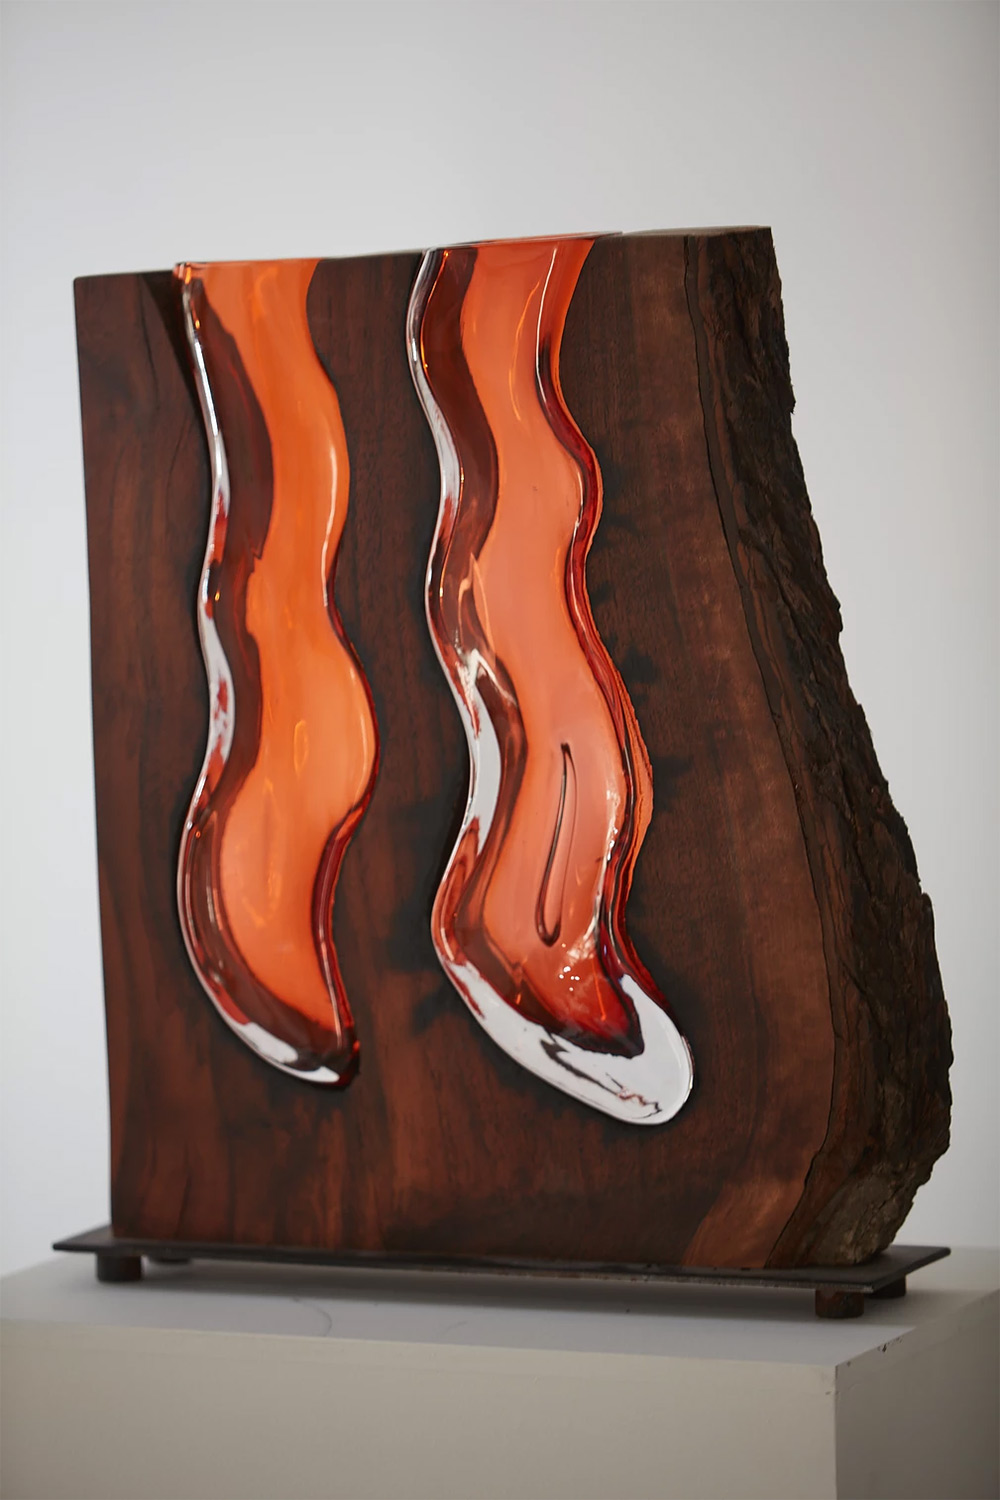 Glass Vases Formed Within Wooden Enclosures by Scott Slagerman Studio Artes & contextos slagerman 4